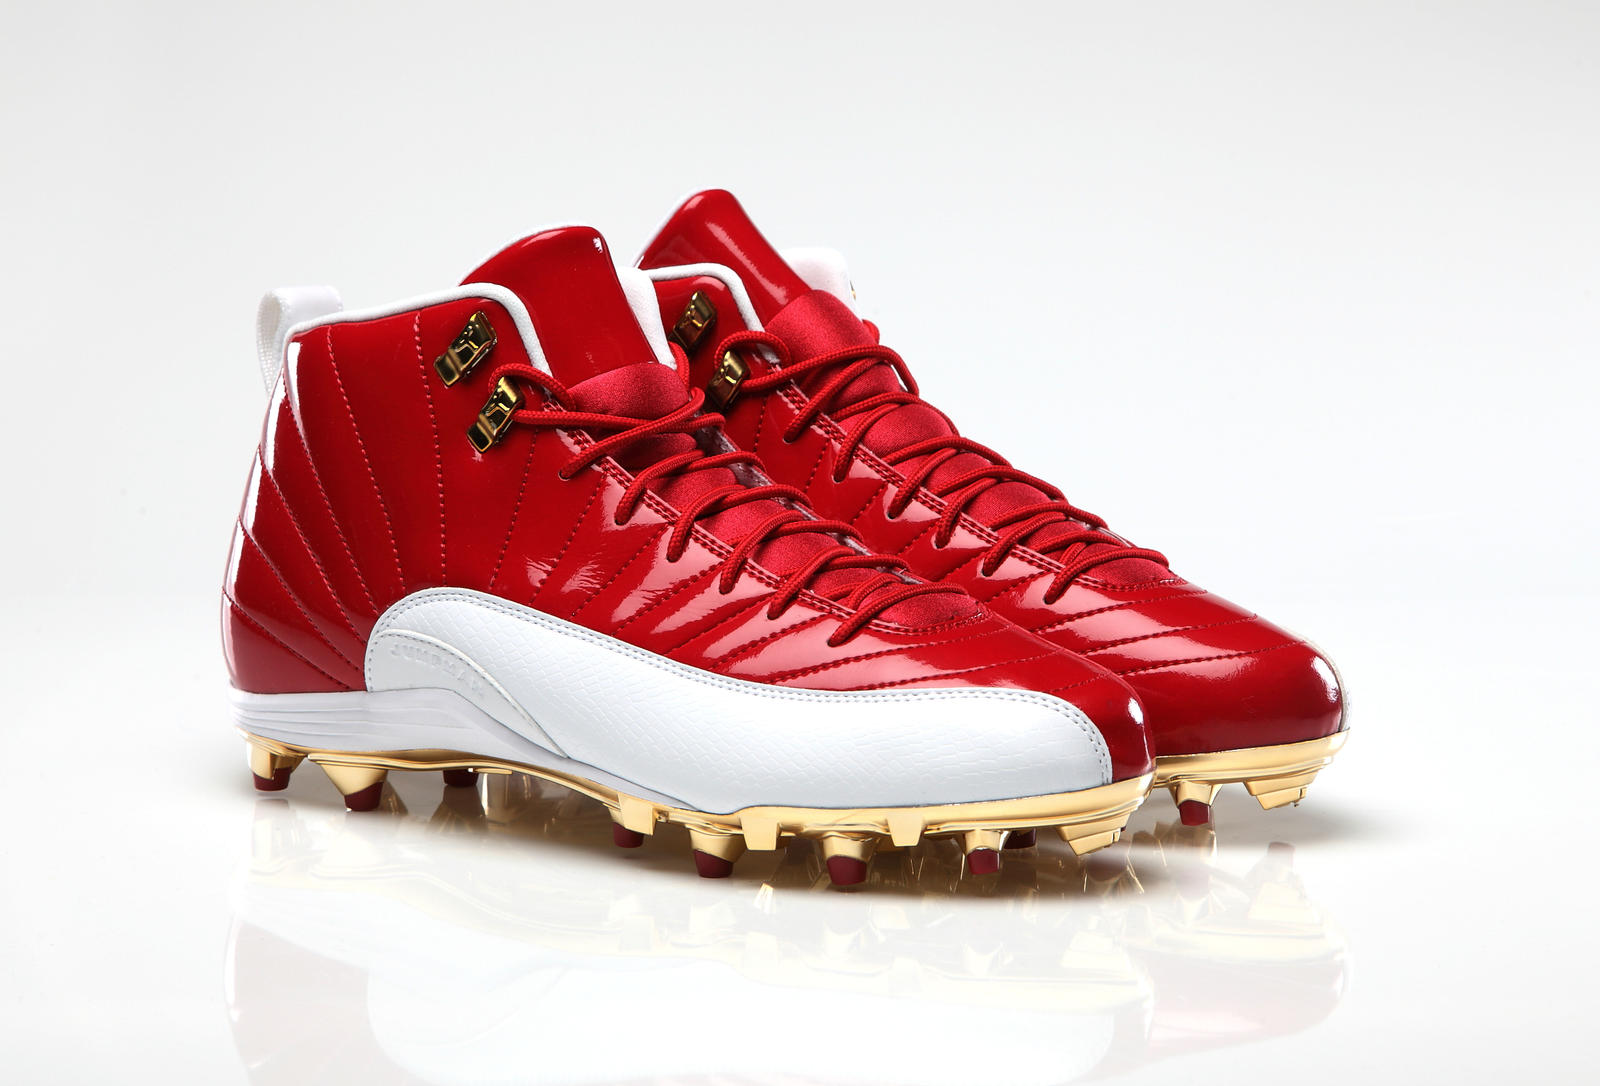 nike jordan clothing nike silver cleats